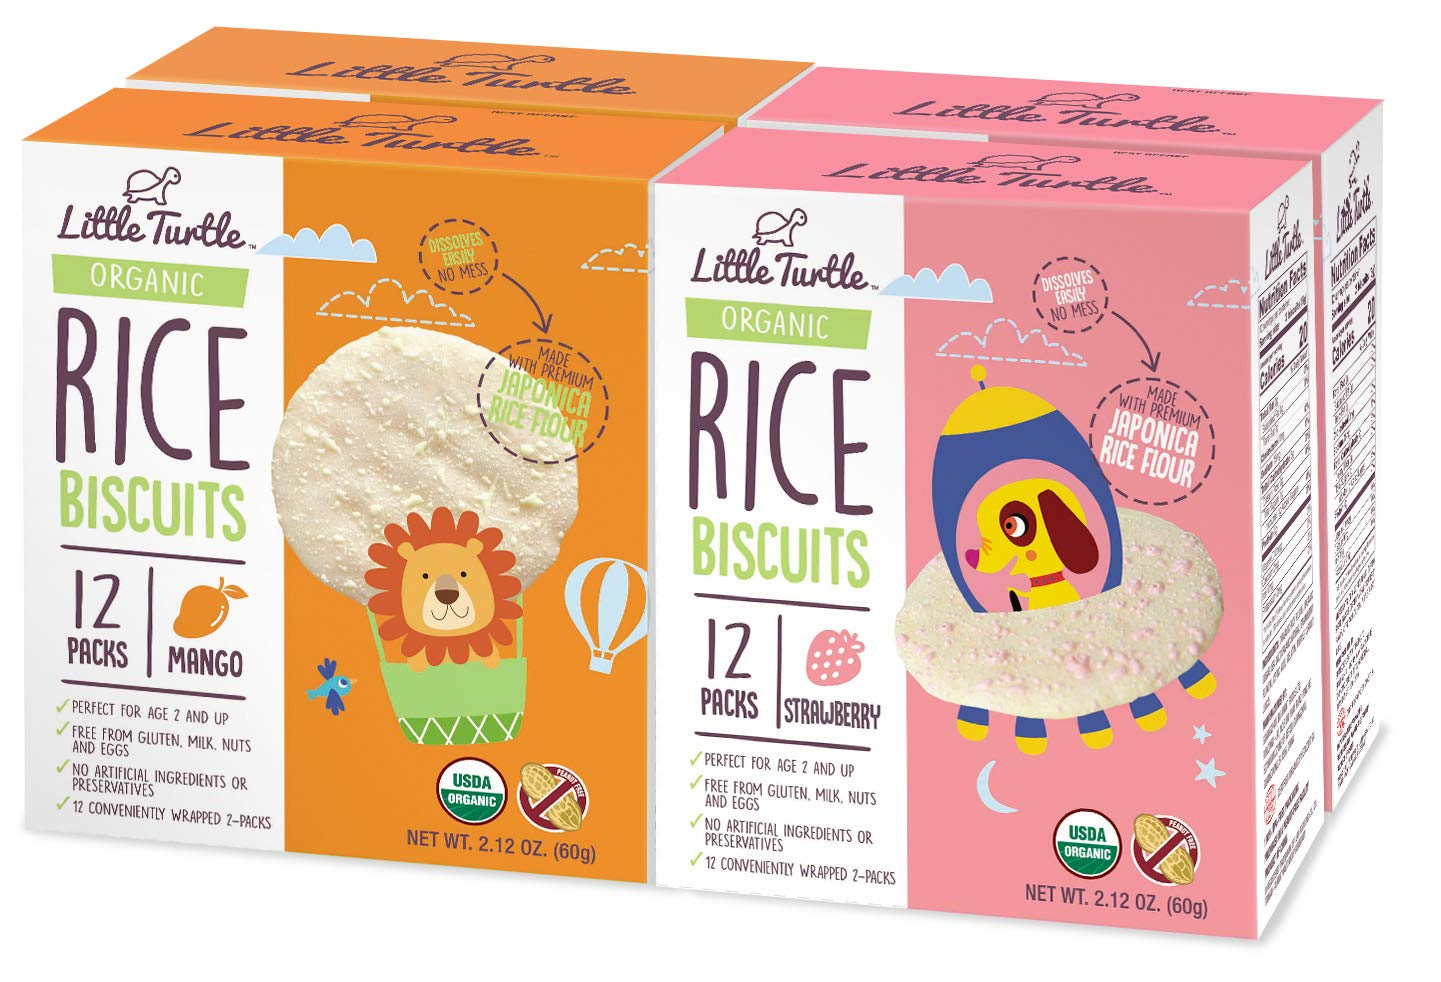 Little Turtle Rice Biscuits Combo Pack, Organic Mango & Strawberry Flavor, 12 wrapped 2 Pack, 4 Count by Little Turtle